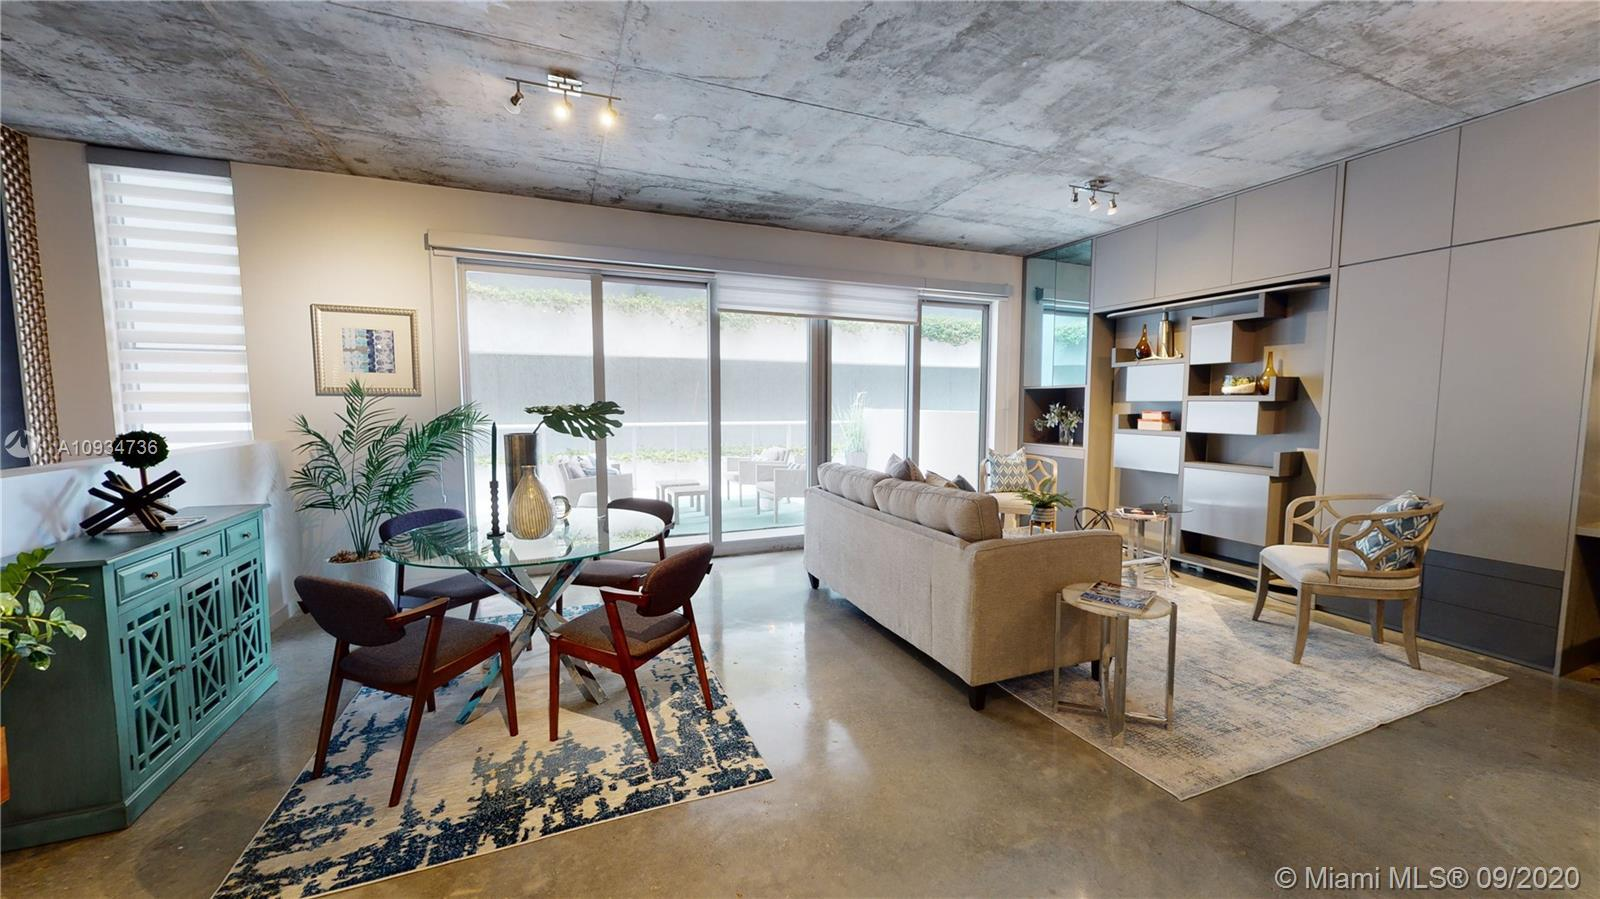 LIVE & WORK LOFT. MAGNIFICENT TRI LEVEL UNIT IN THE HEART OF MIDTOWN MIAMI. EXCELLENT OPPORTUNITY FO